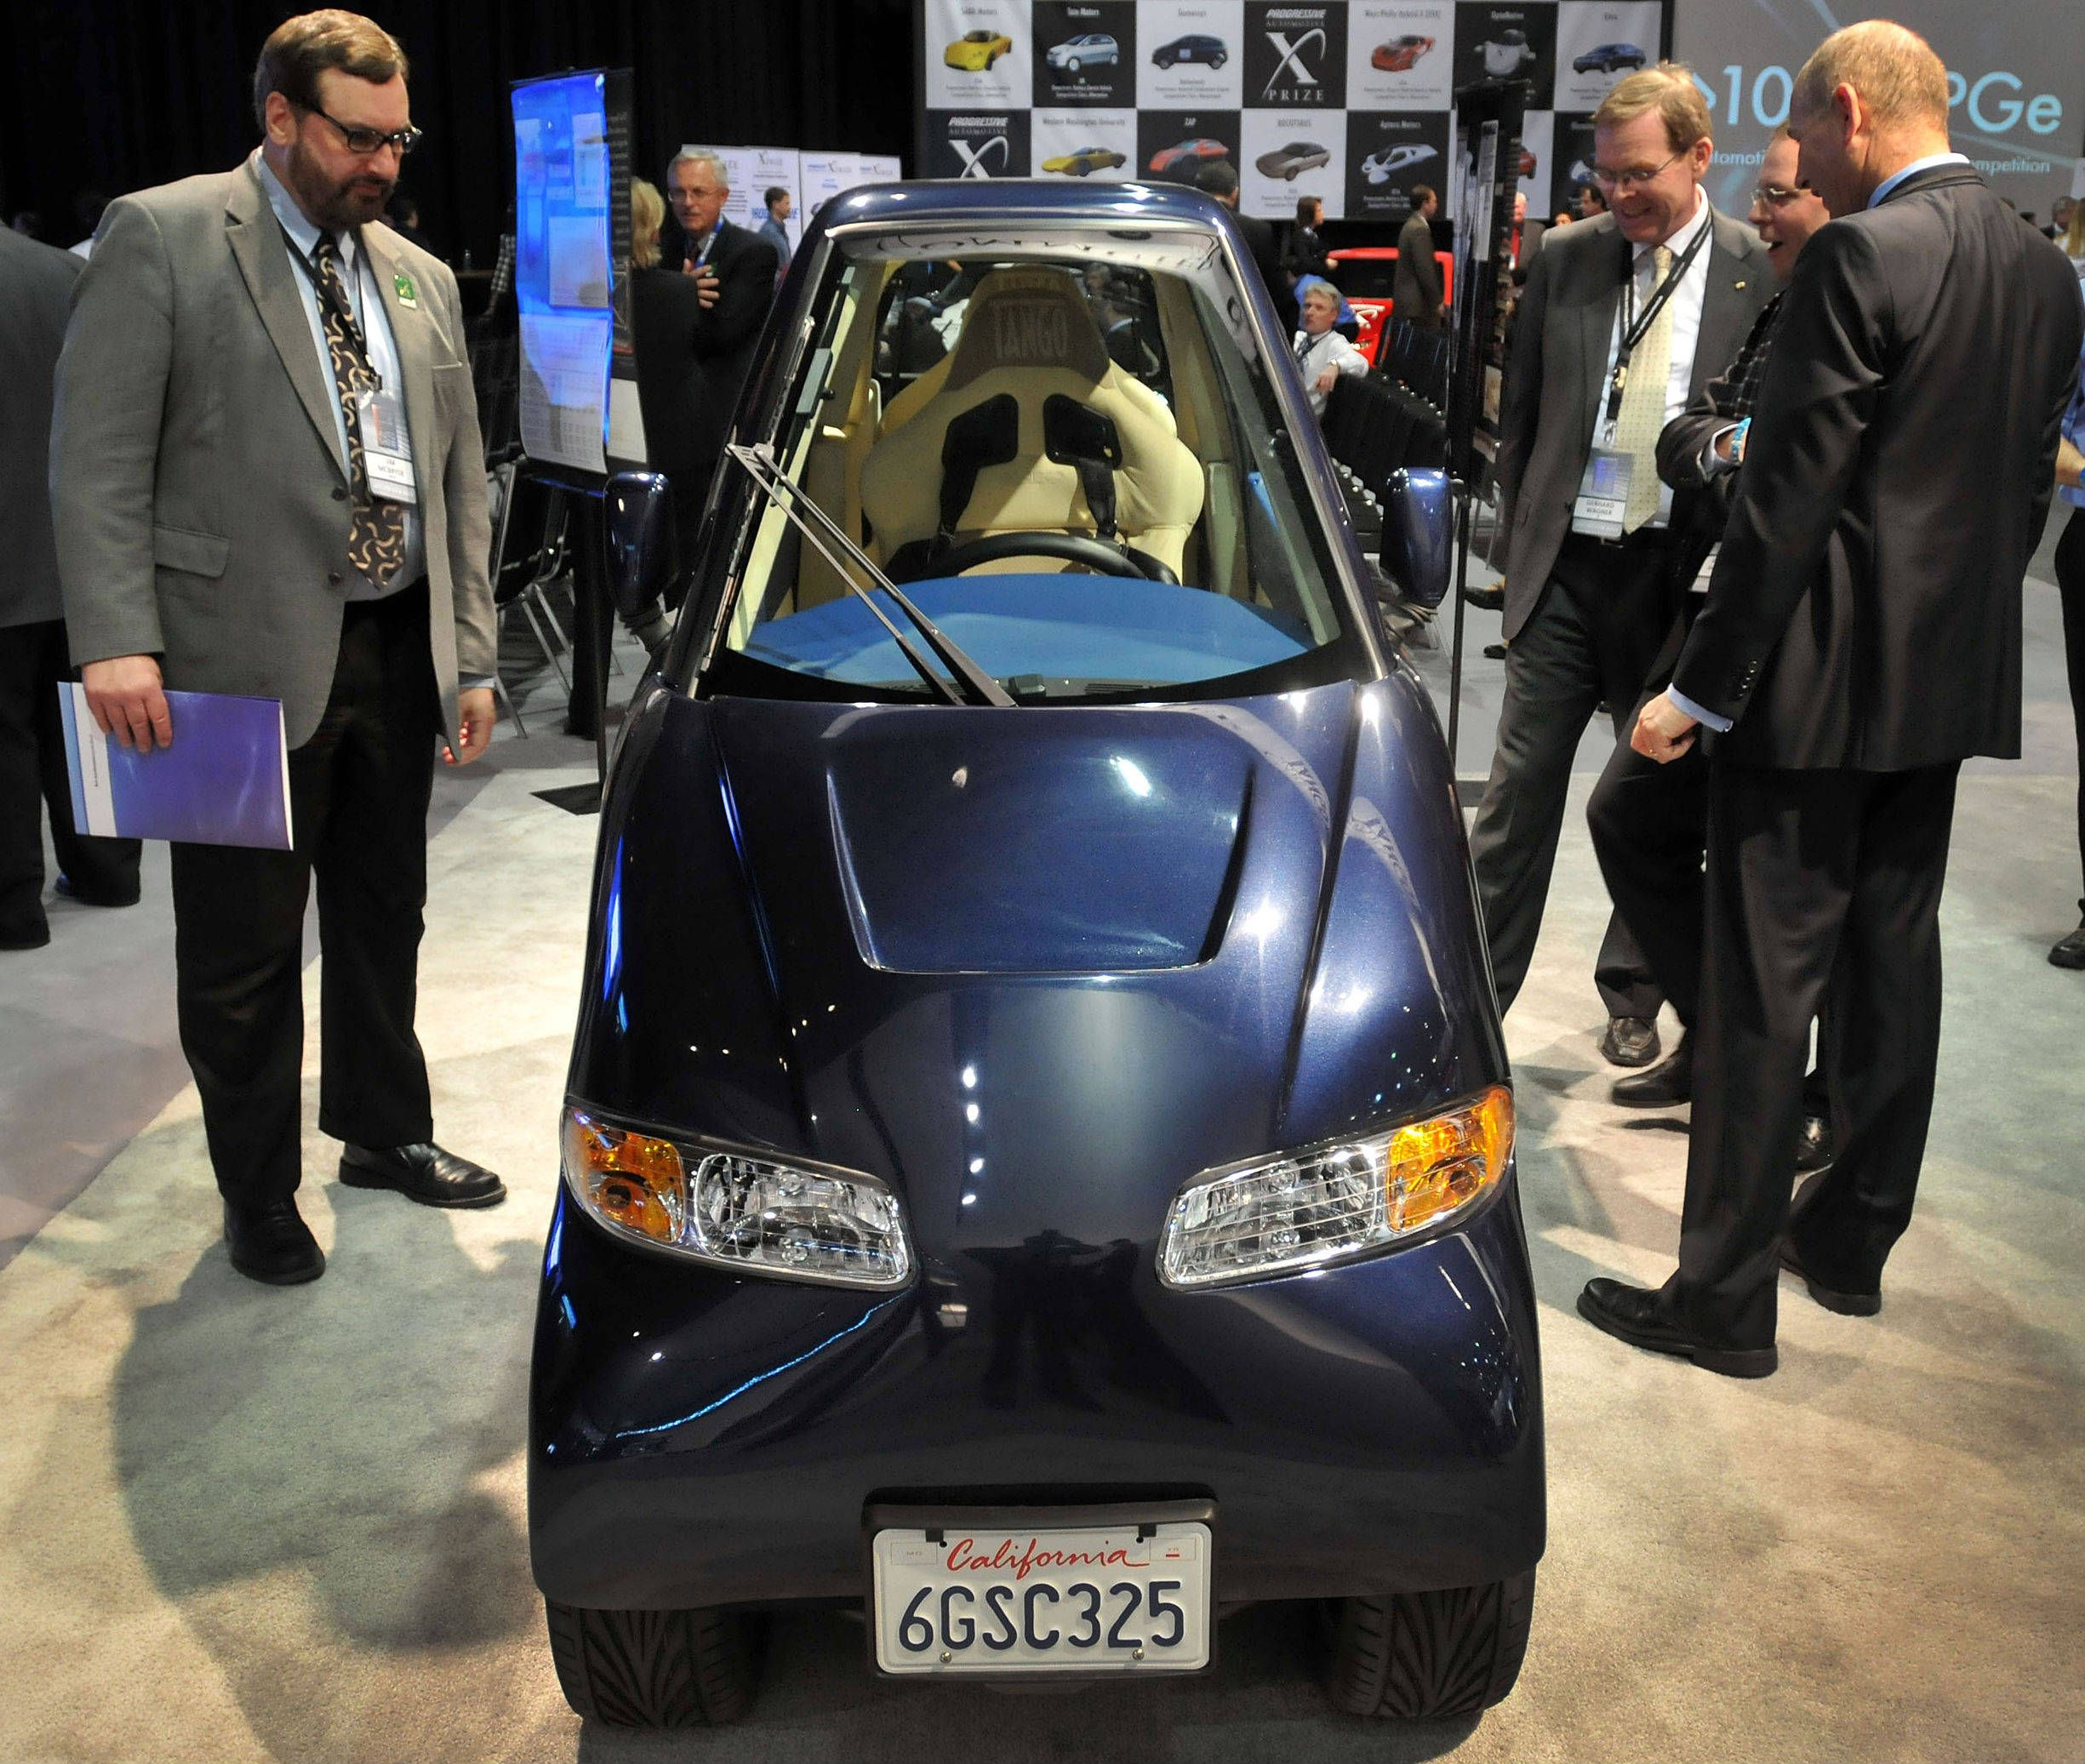 Strange Cars And Other Odd Vehicles At The Detroit Auto Show